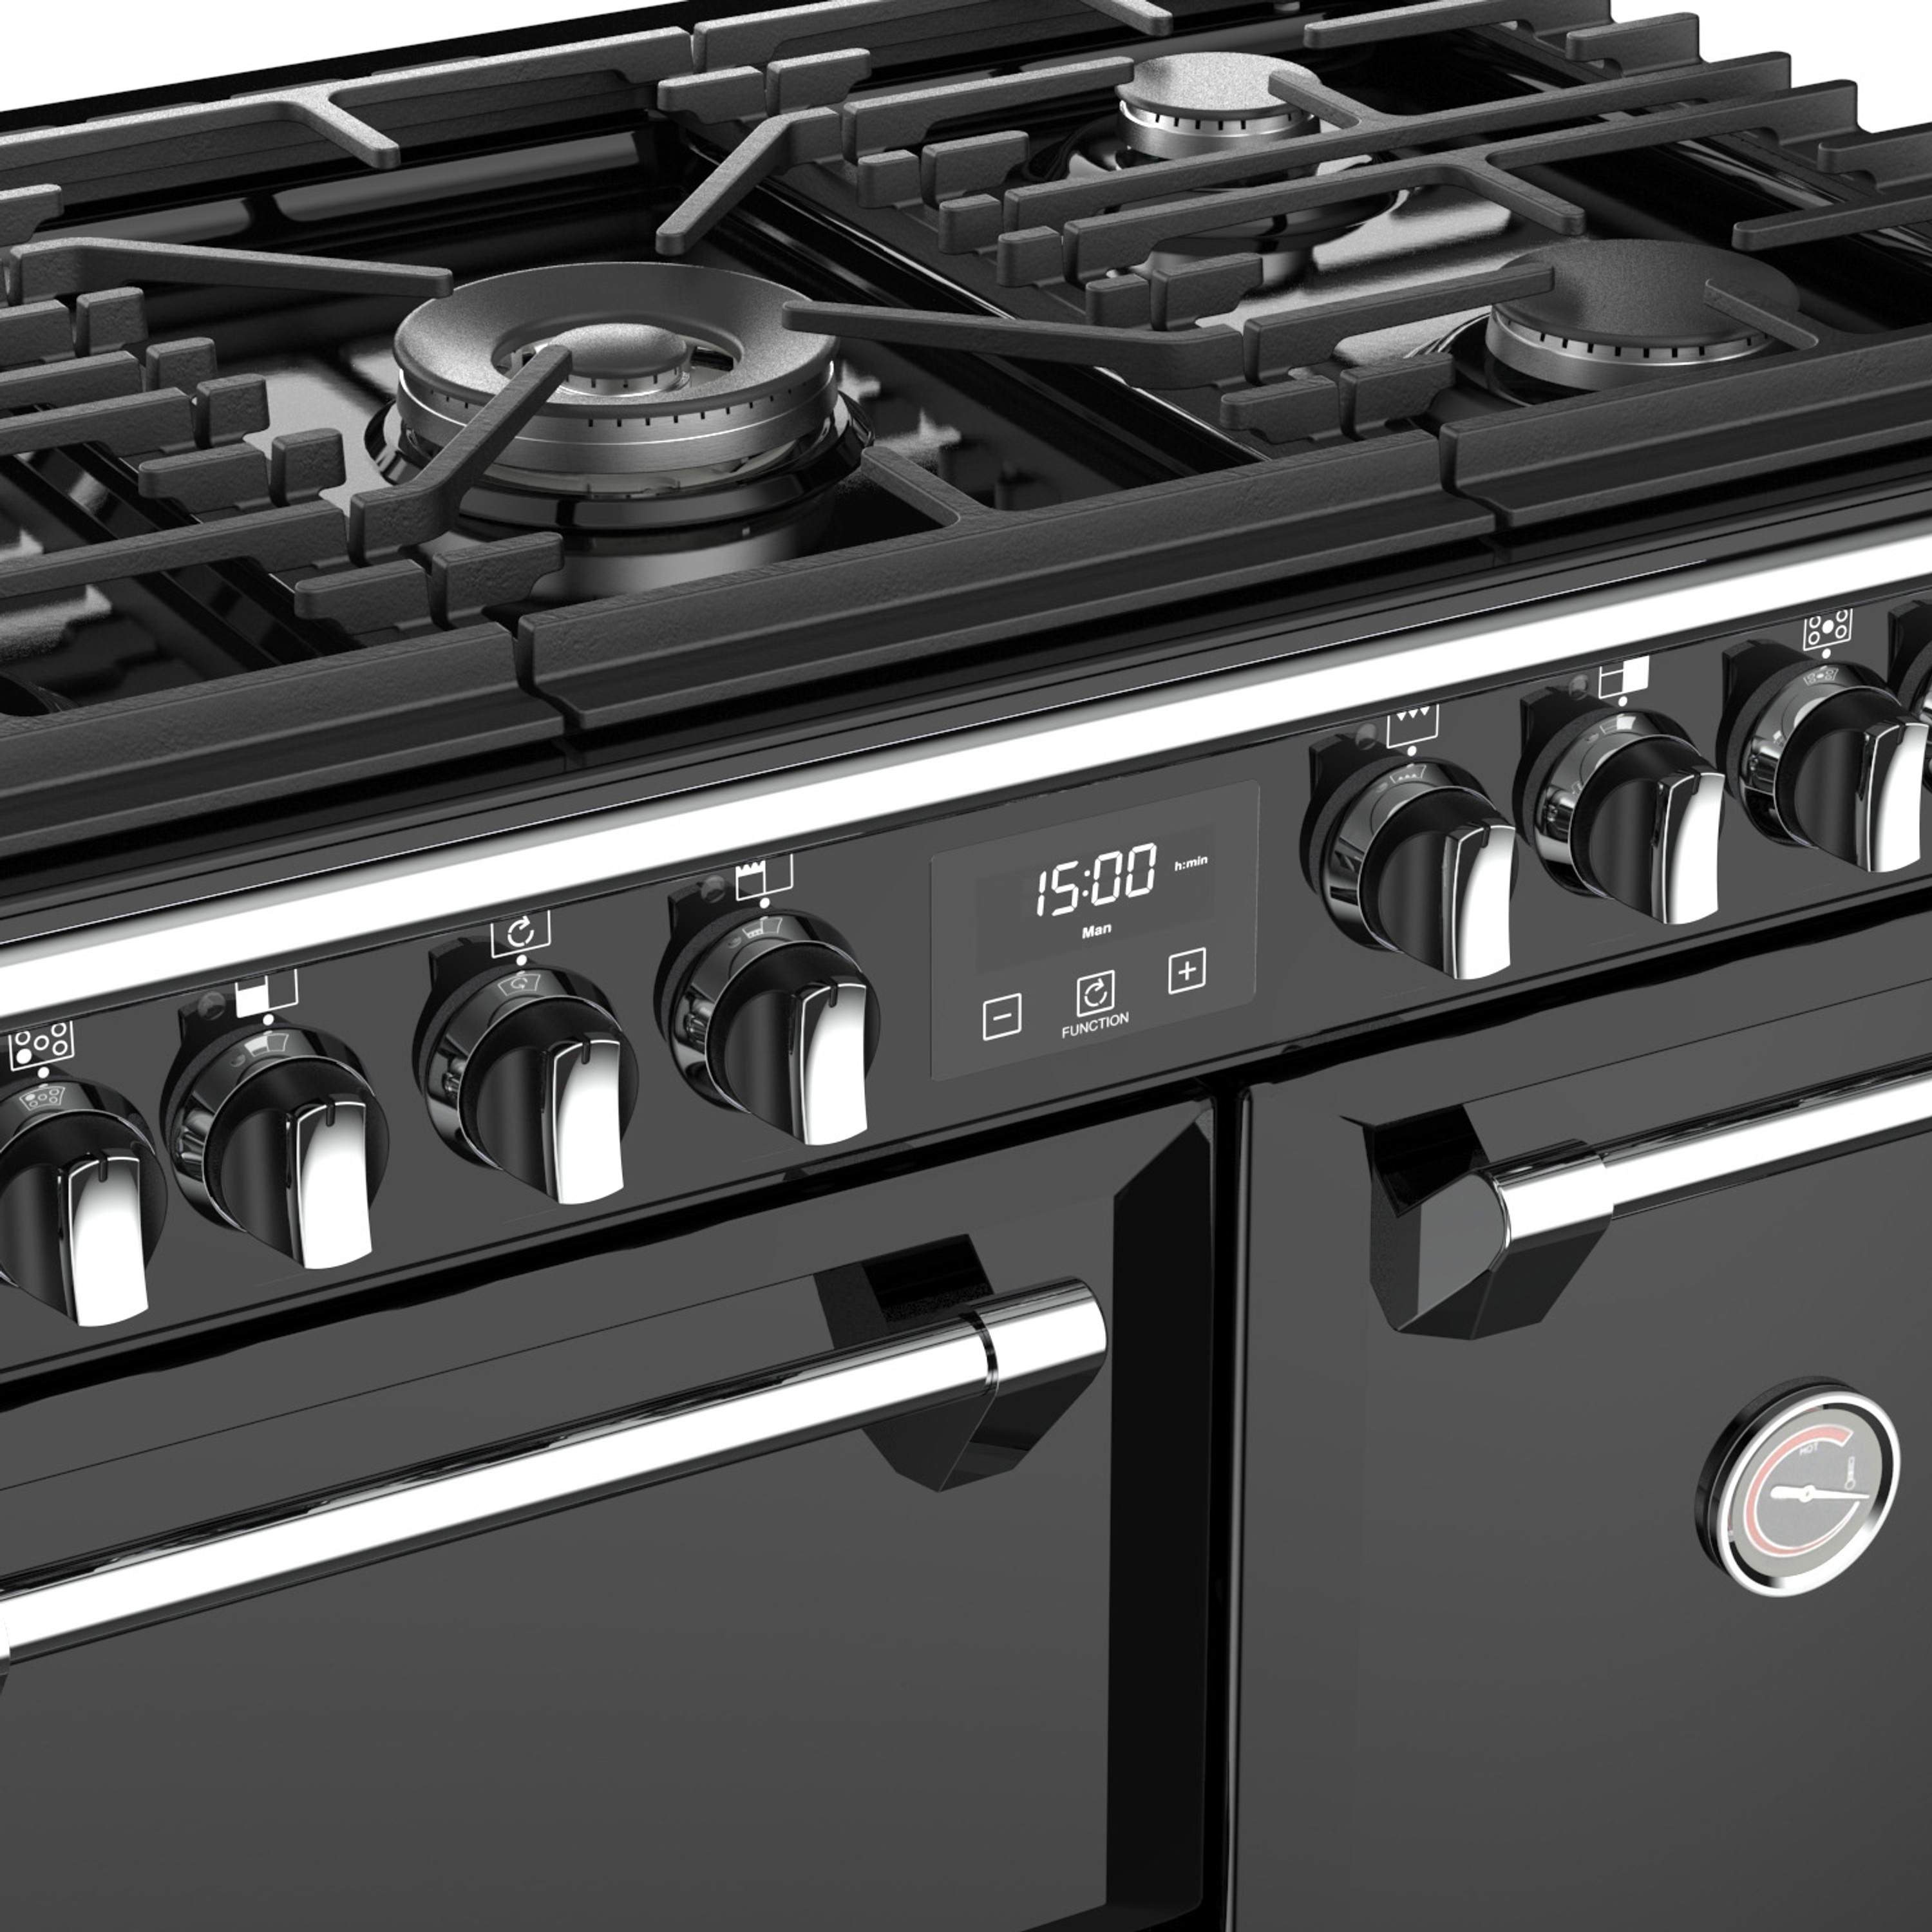 Stoves Richmond S900 Gas Schwarz Range Cooker